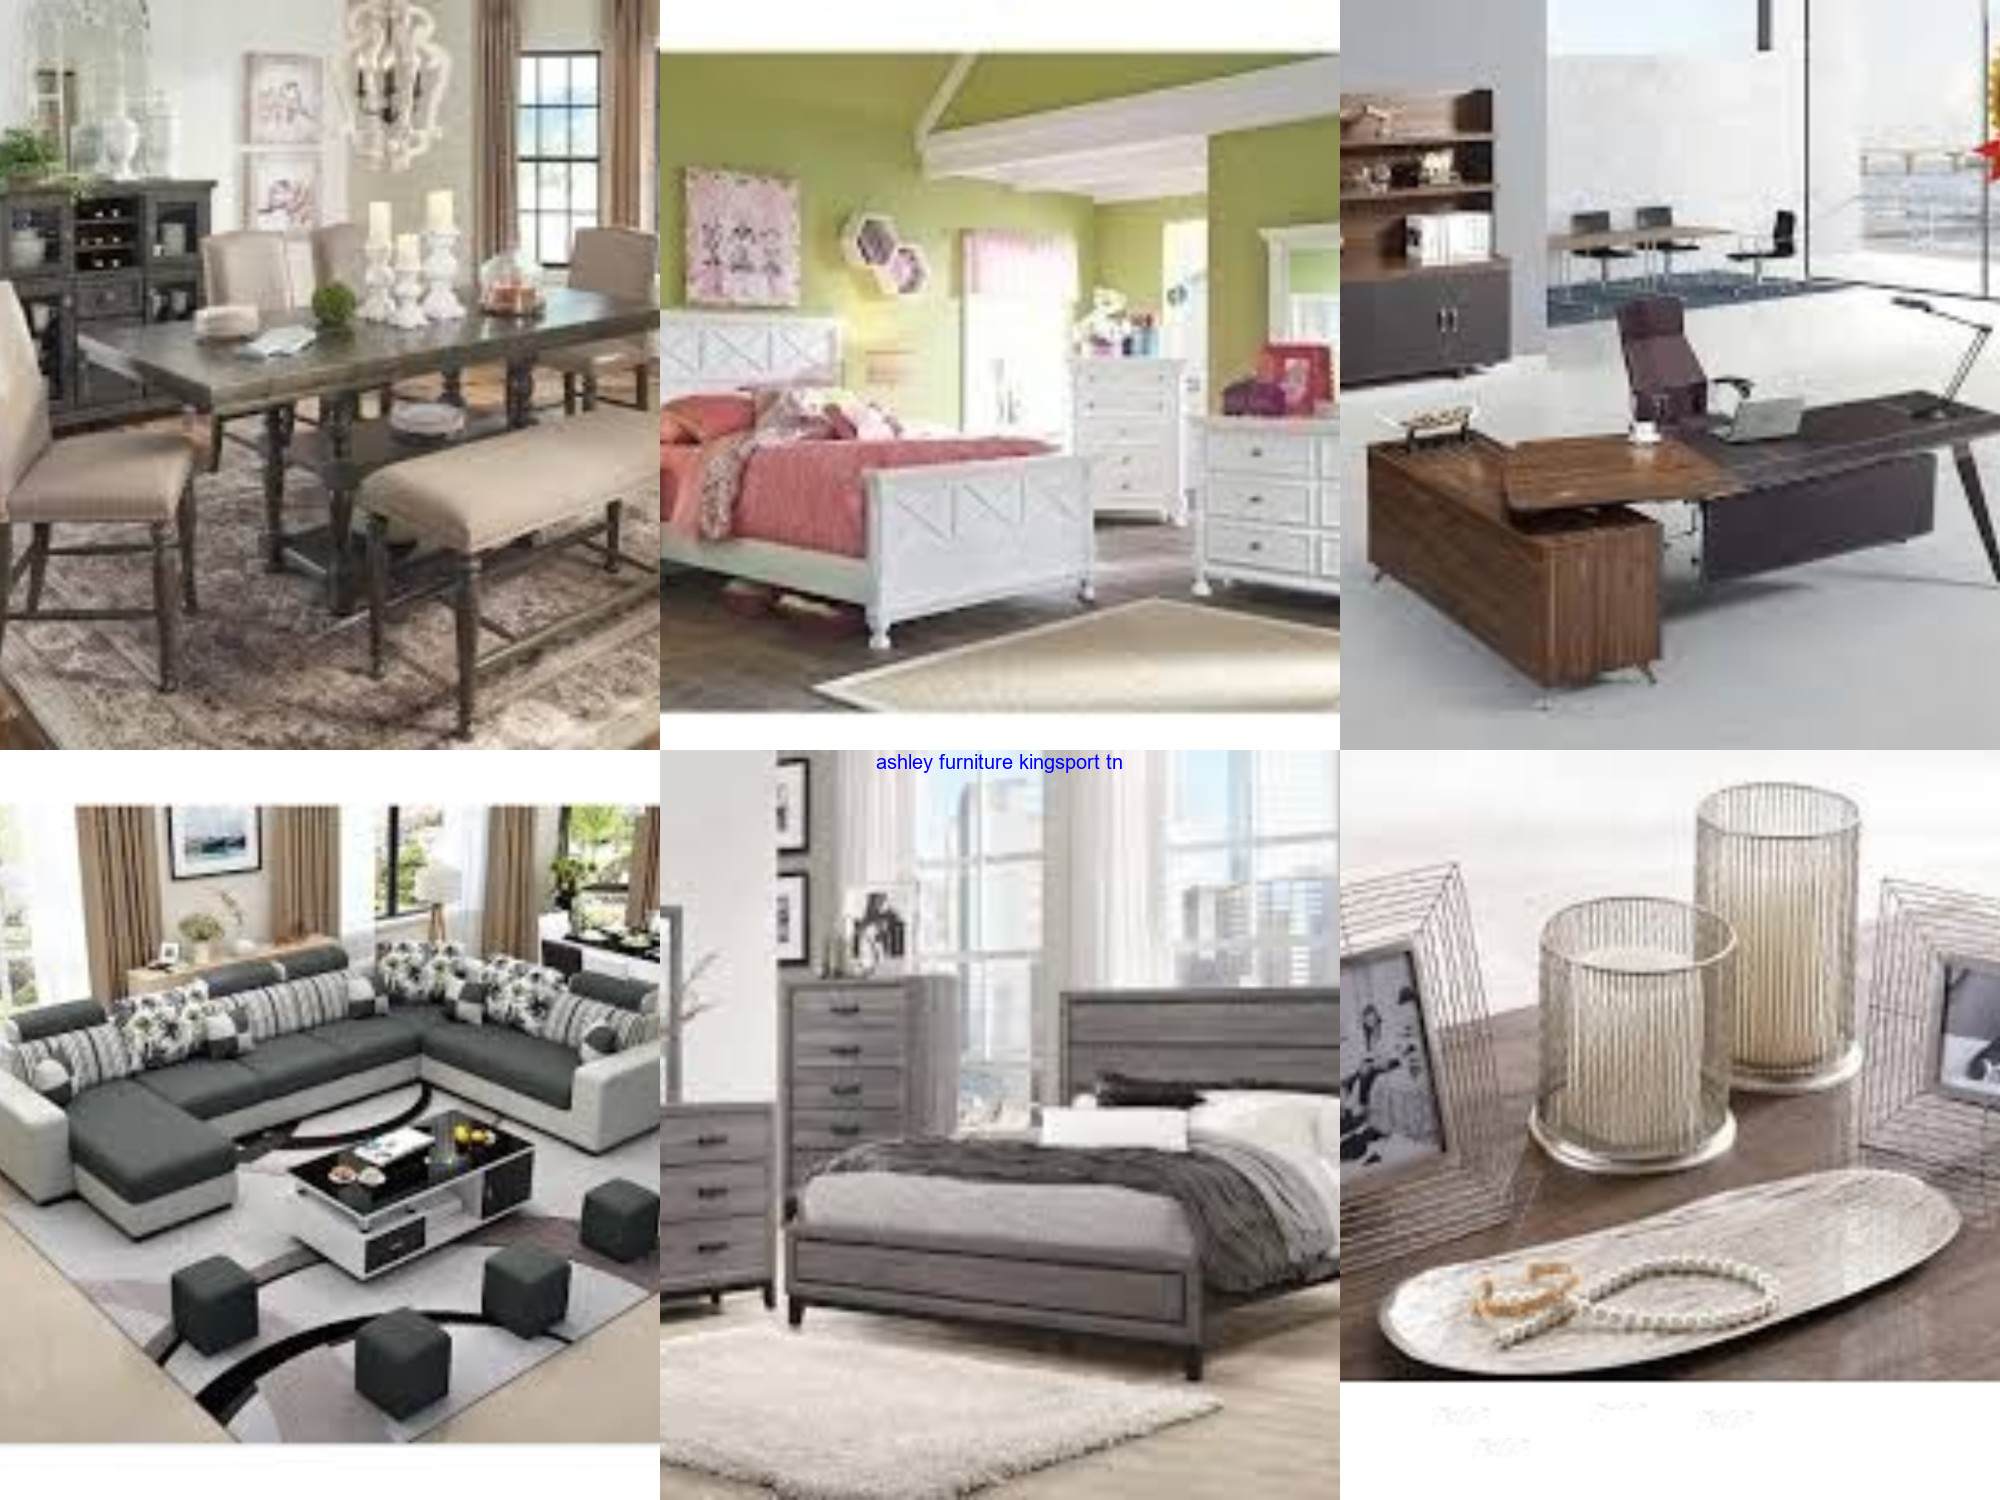 Ashley Furniture Kingsport Tn I Suggest One To Visit This